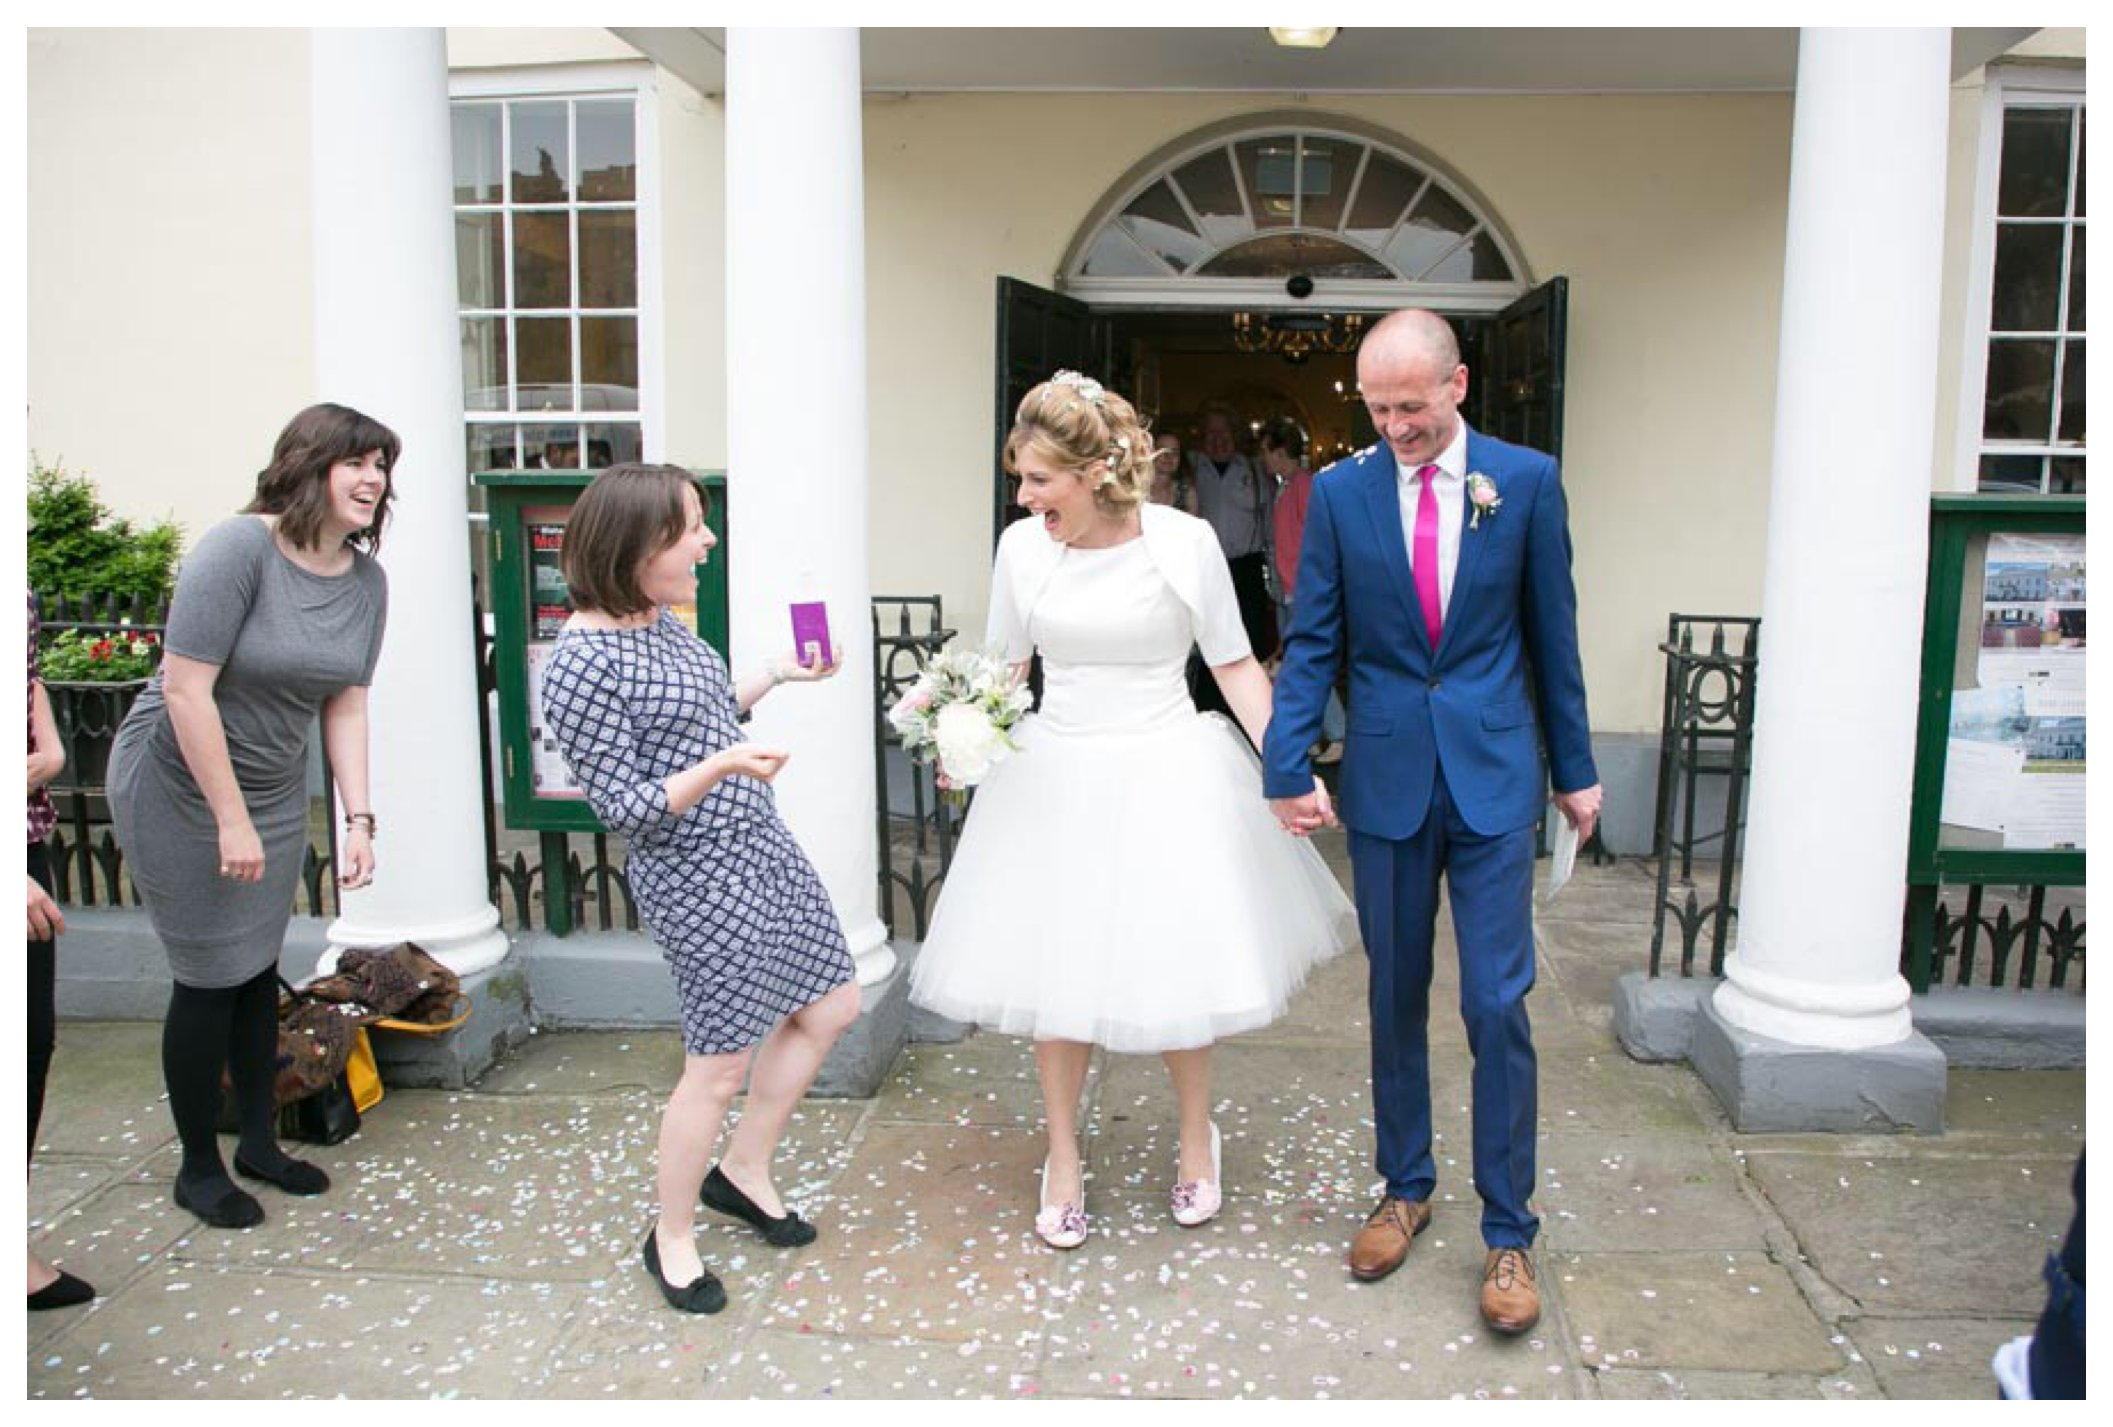 bride laughing at guest as she exits wedding at Athenaeum Bury St Edmunds